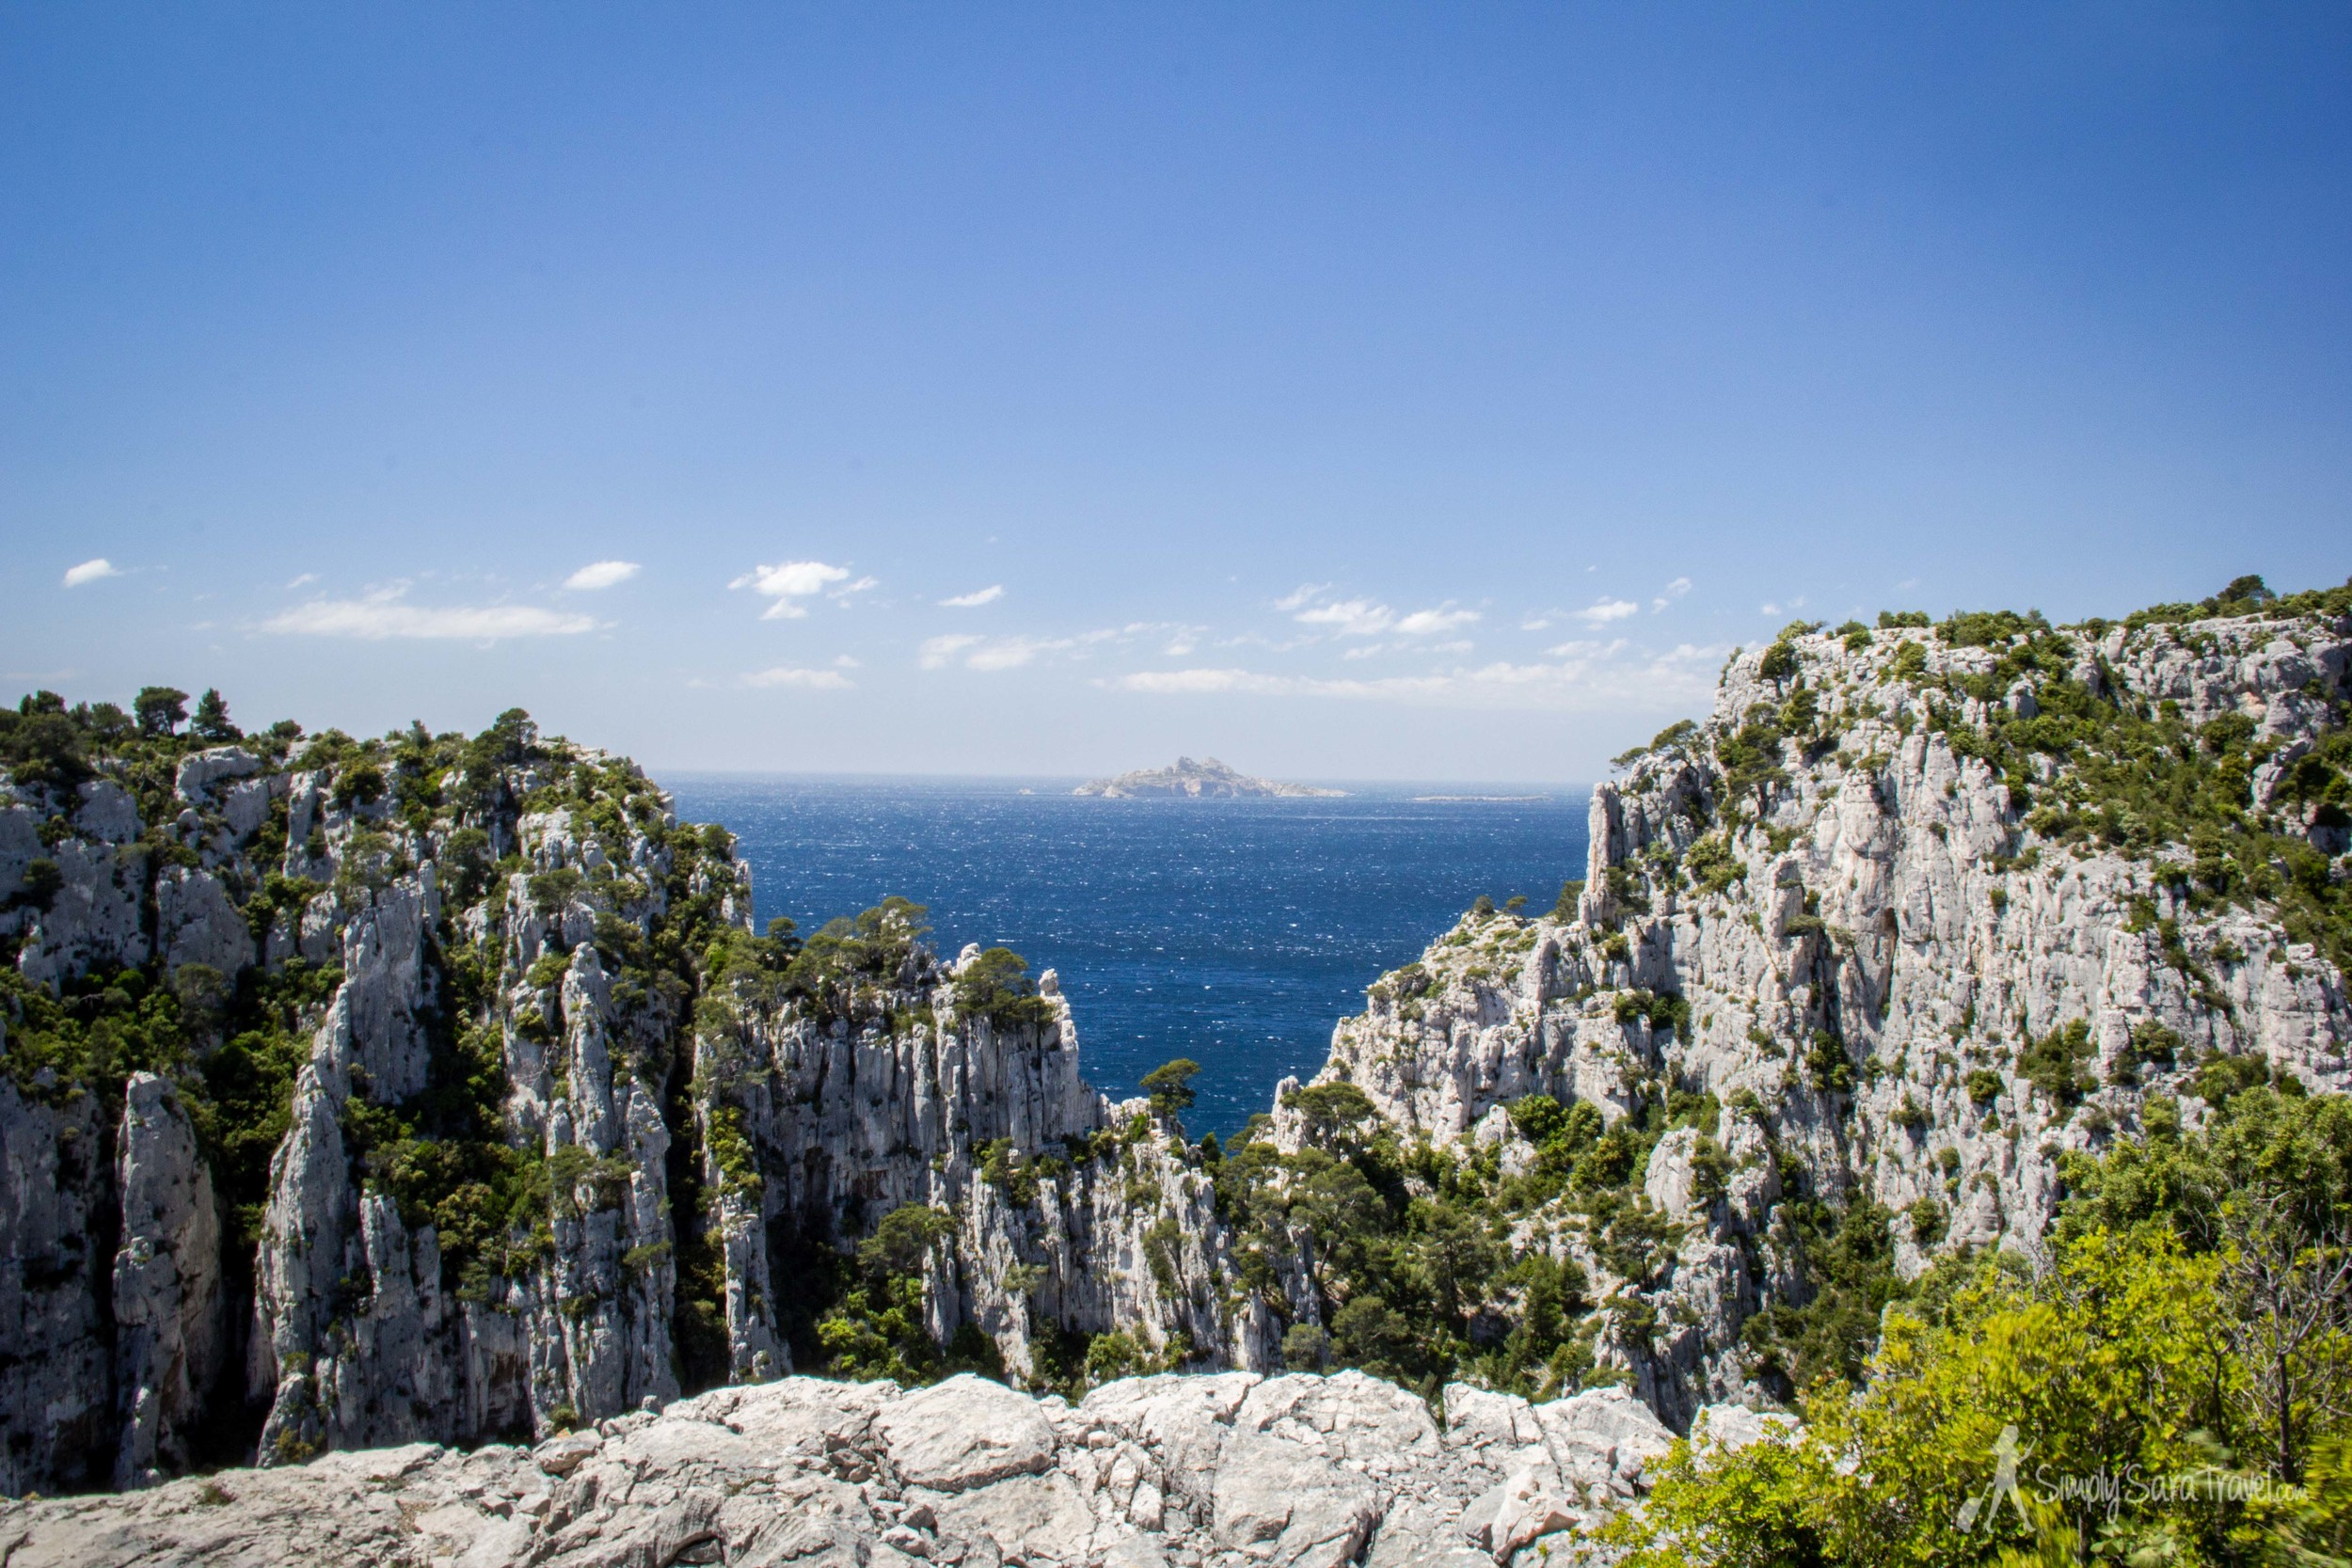 More than half of this hike was done despite great hunger (we were holding out to eat our picnic lunch on the third of the Calanques, named En Vau) - and even though it was hard to push on, with views like this, it still easily was the top on our list out all ALL the sightseeing we did in a month!